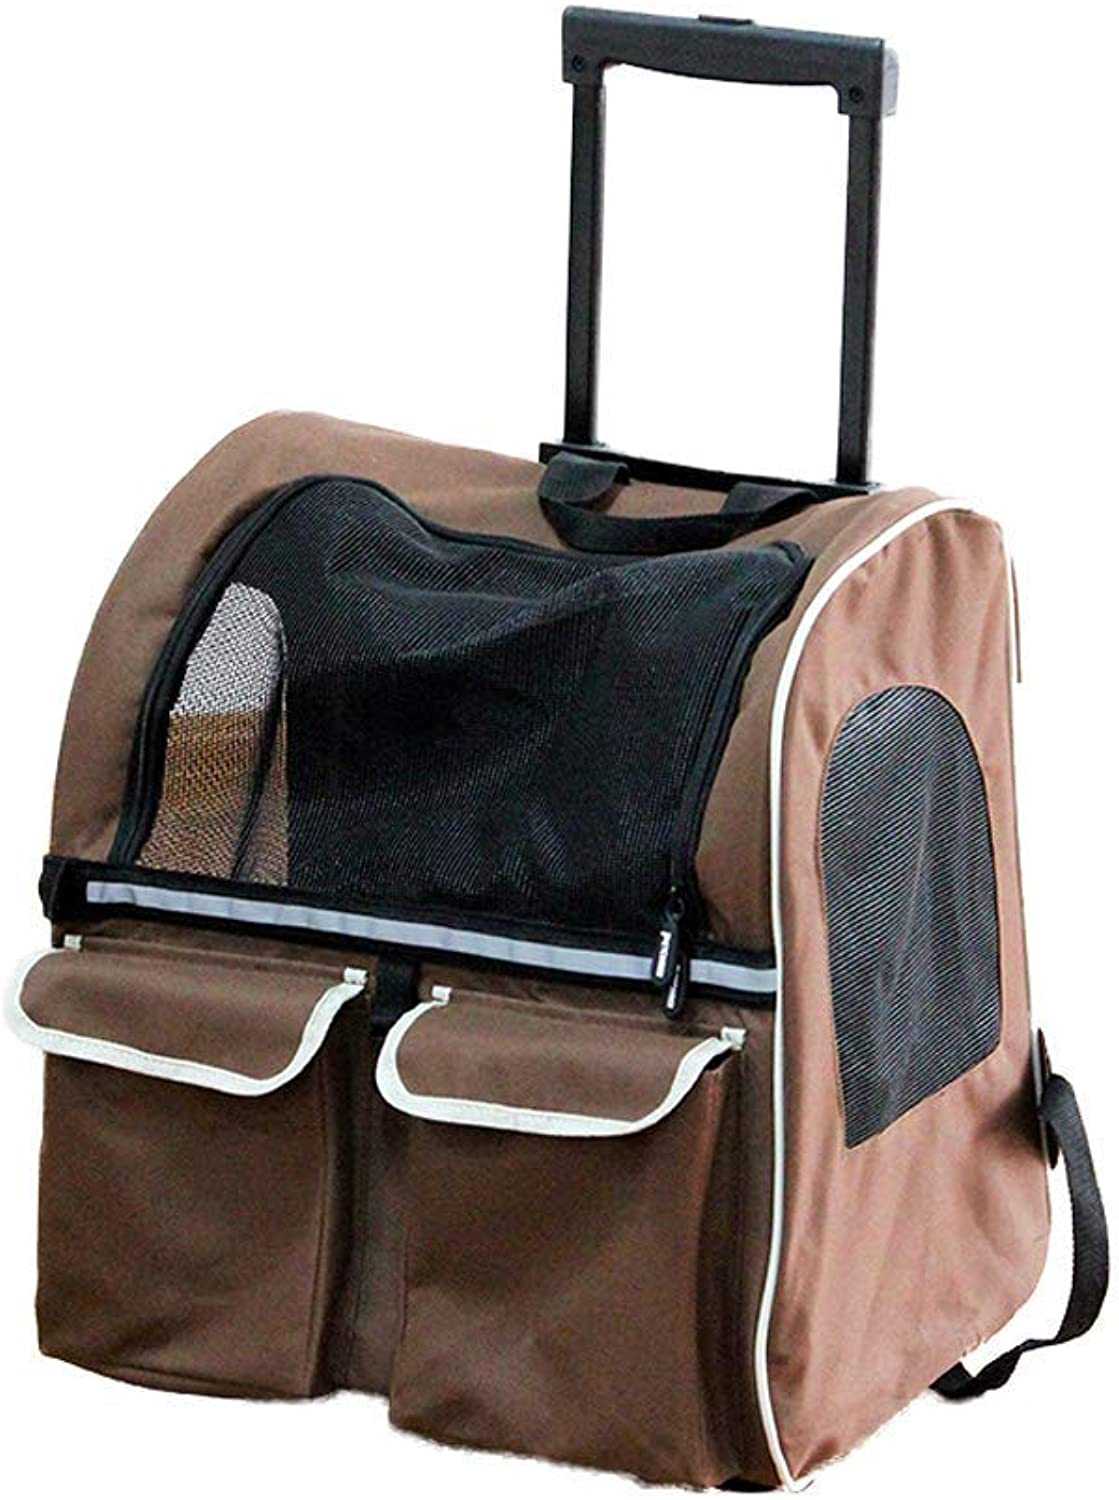 Pet Carrier Seat Pet Bag, Brown Dog Out Portable Travel Bag Cat Backpack Trolley Case 43  30  50CM (color   Brown) Pet Carrier Crate